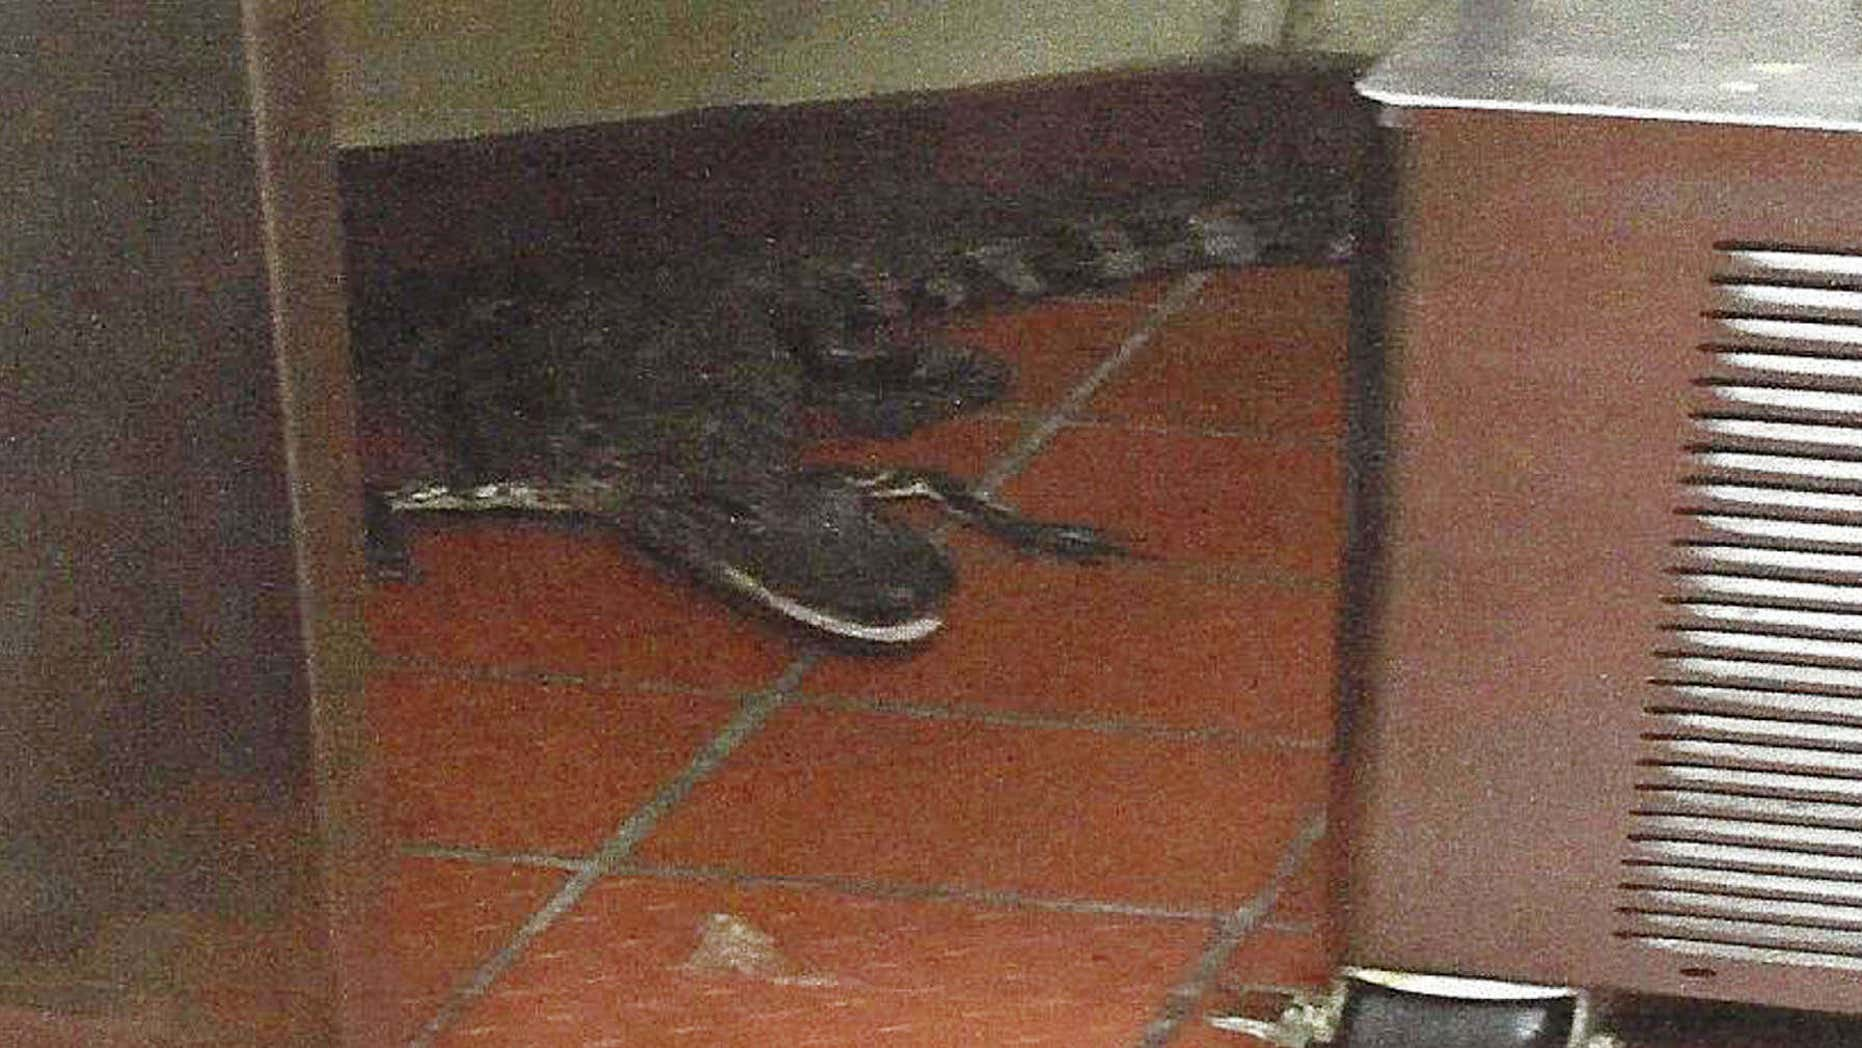 A Florida man throwing an alligator from the car window was caught and arrested.